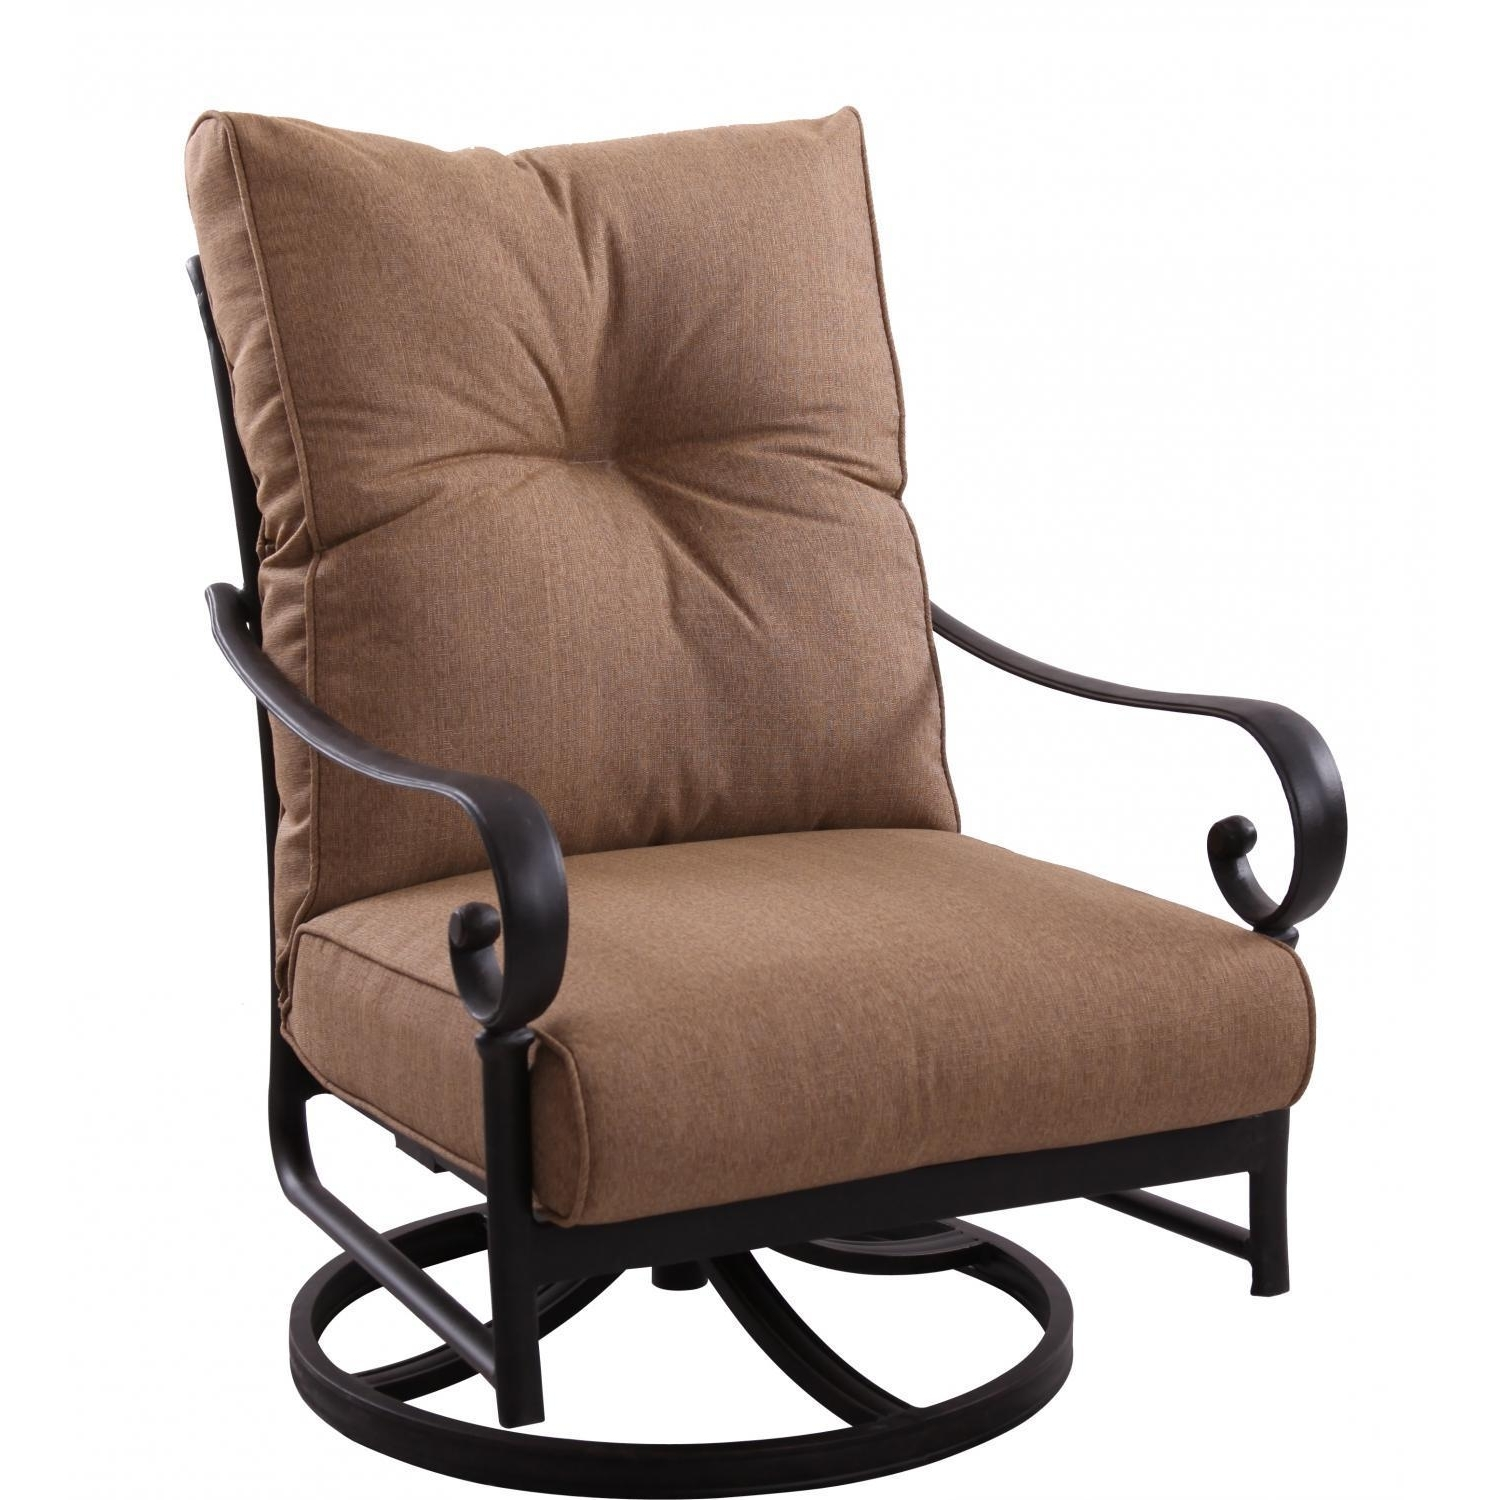 Darlee Santa Anita Cast Aluminum Patio Swivel Rocker Club Chair For Famous Patio Rocking Chairs With Ottoman (Gallery 4 of 20)